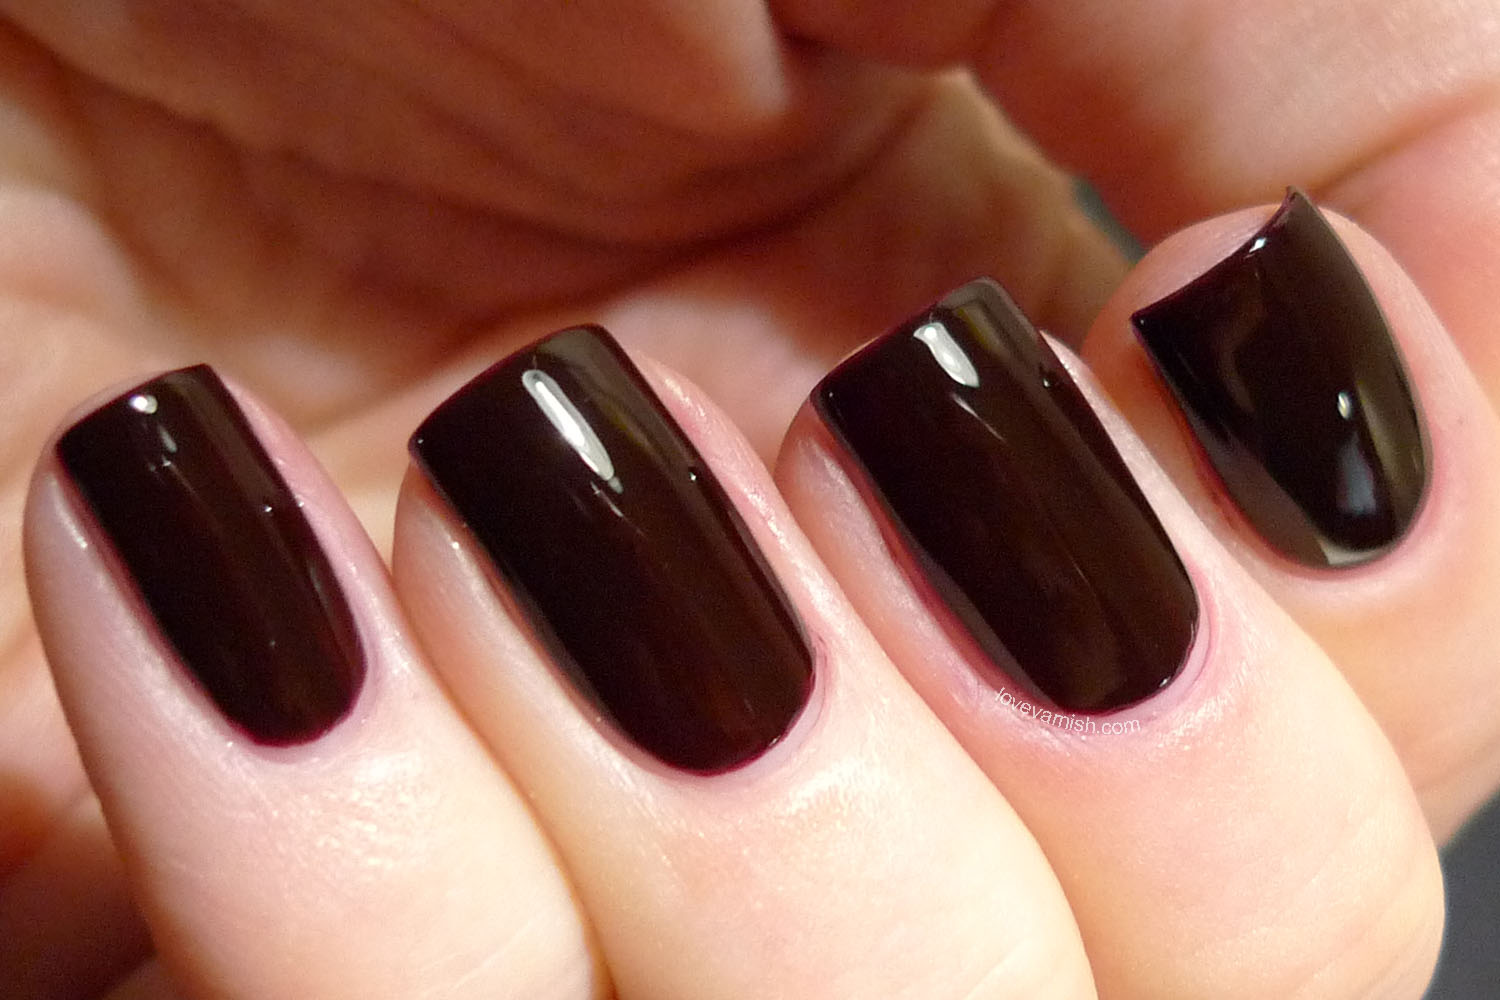 OPI I Sing In Color vampy burgundy creme Gwen Stefani collection